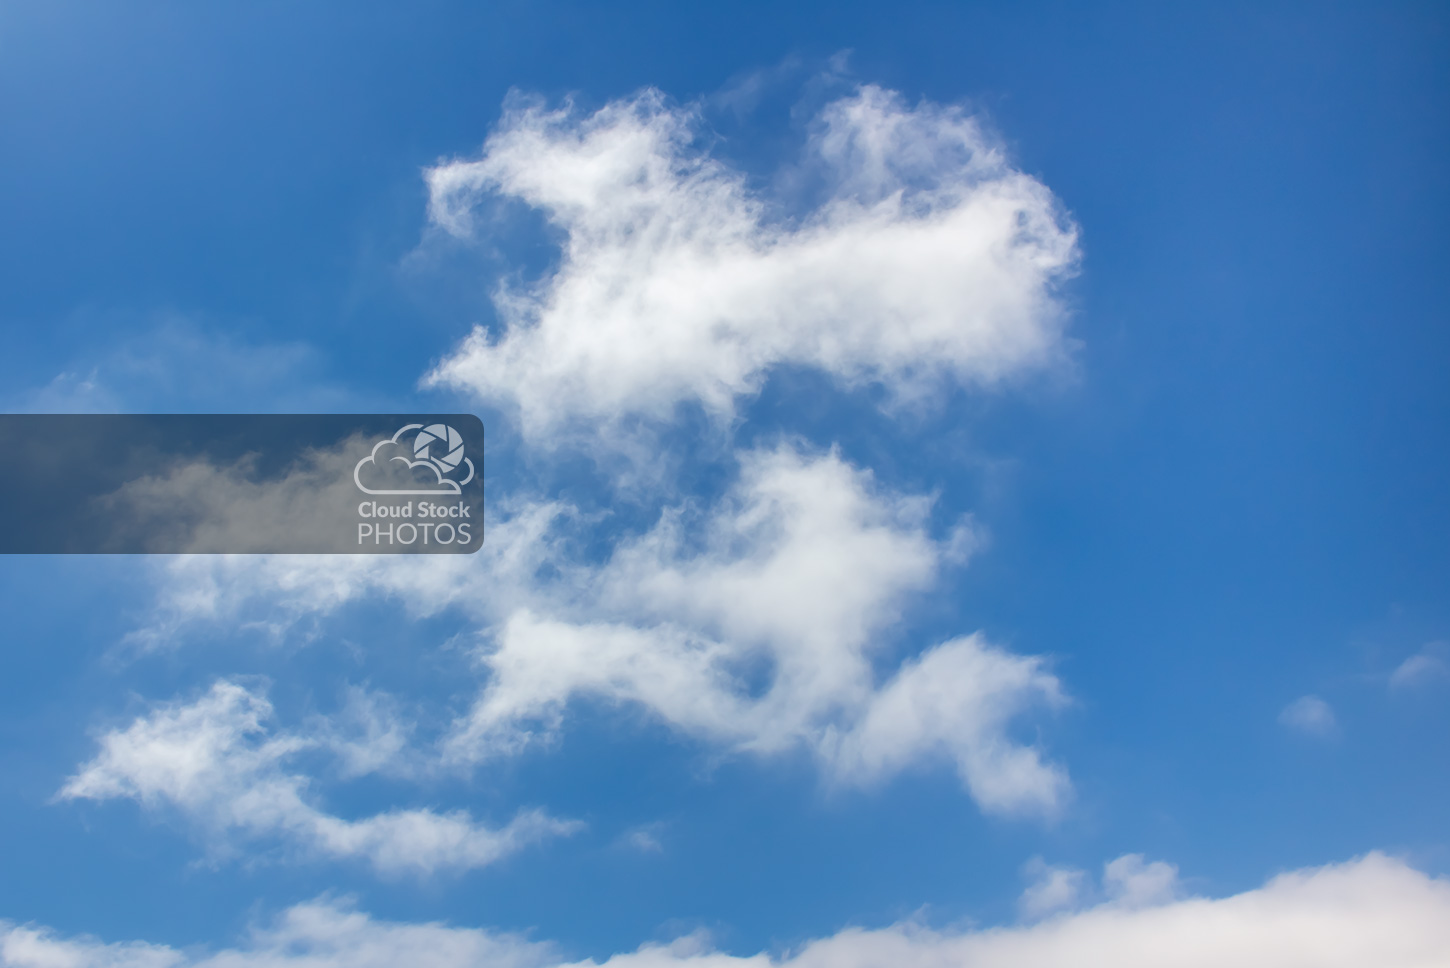 Stock photo of white altocumulus clouds in the summer, with a large area of blue sky around the edges that has a cheerful feeling.